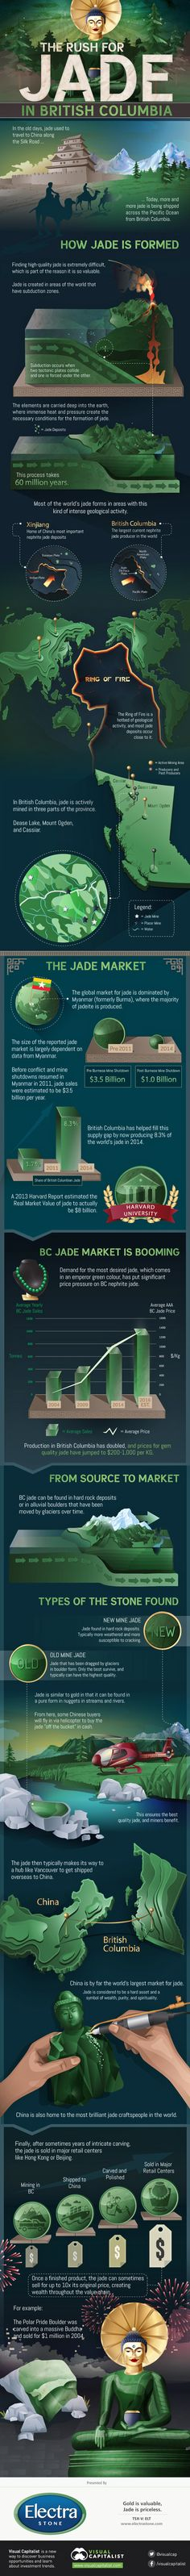 Rush For Jade In British Columbia Infographic Green Gemstones, Crystals And Gemstones, Crystals Minerals, Beijing Olympics, Creating Wealth, Archaeological Discoveries, Girl Guides, China Travel, Perfect Woman